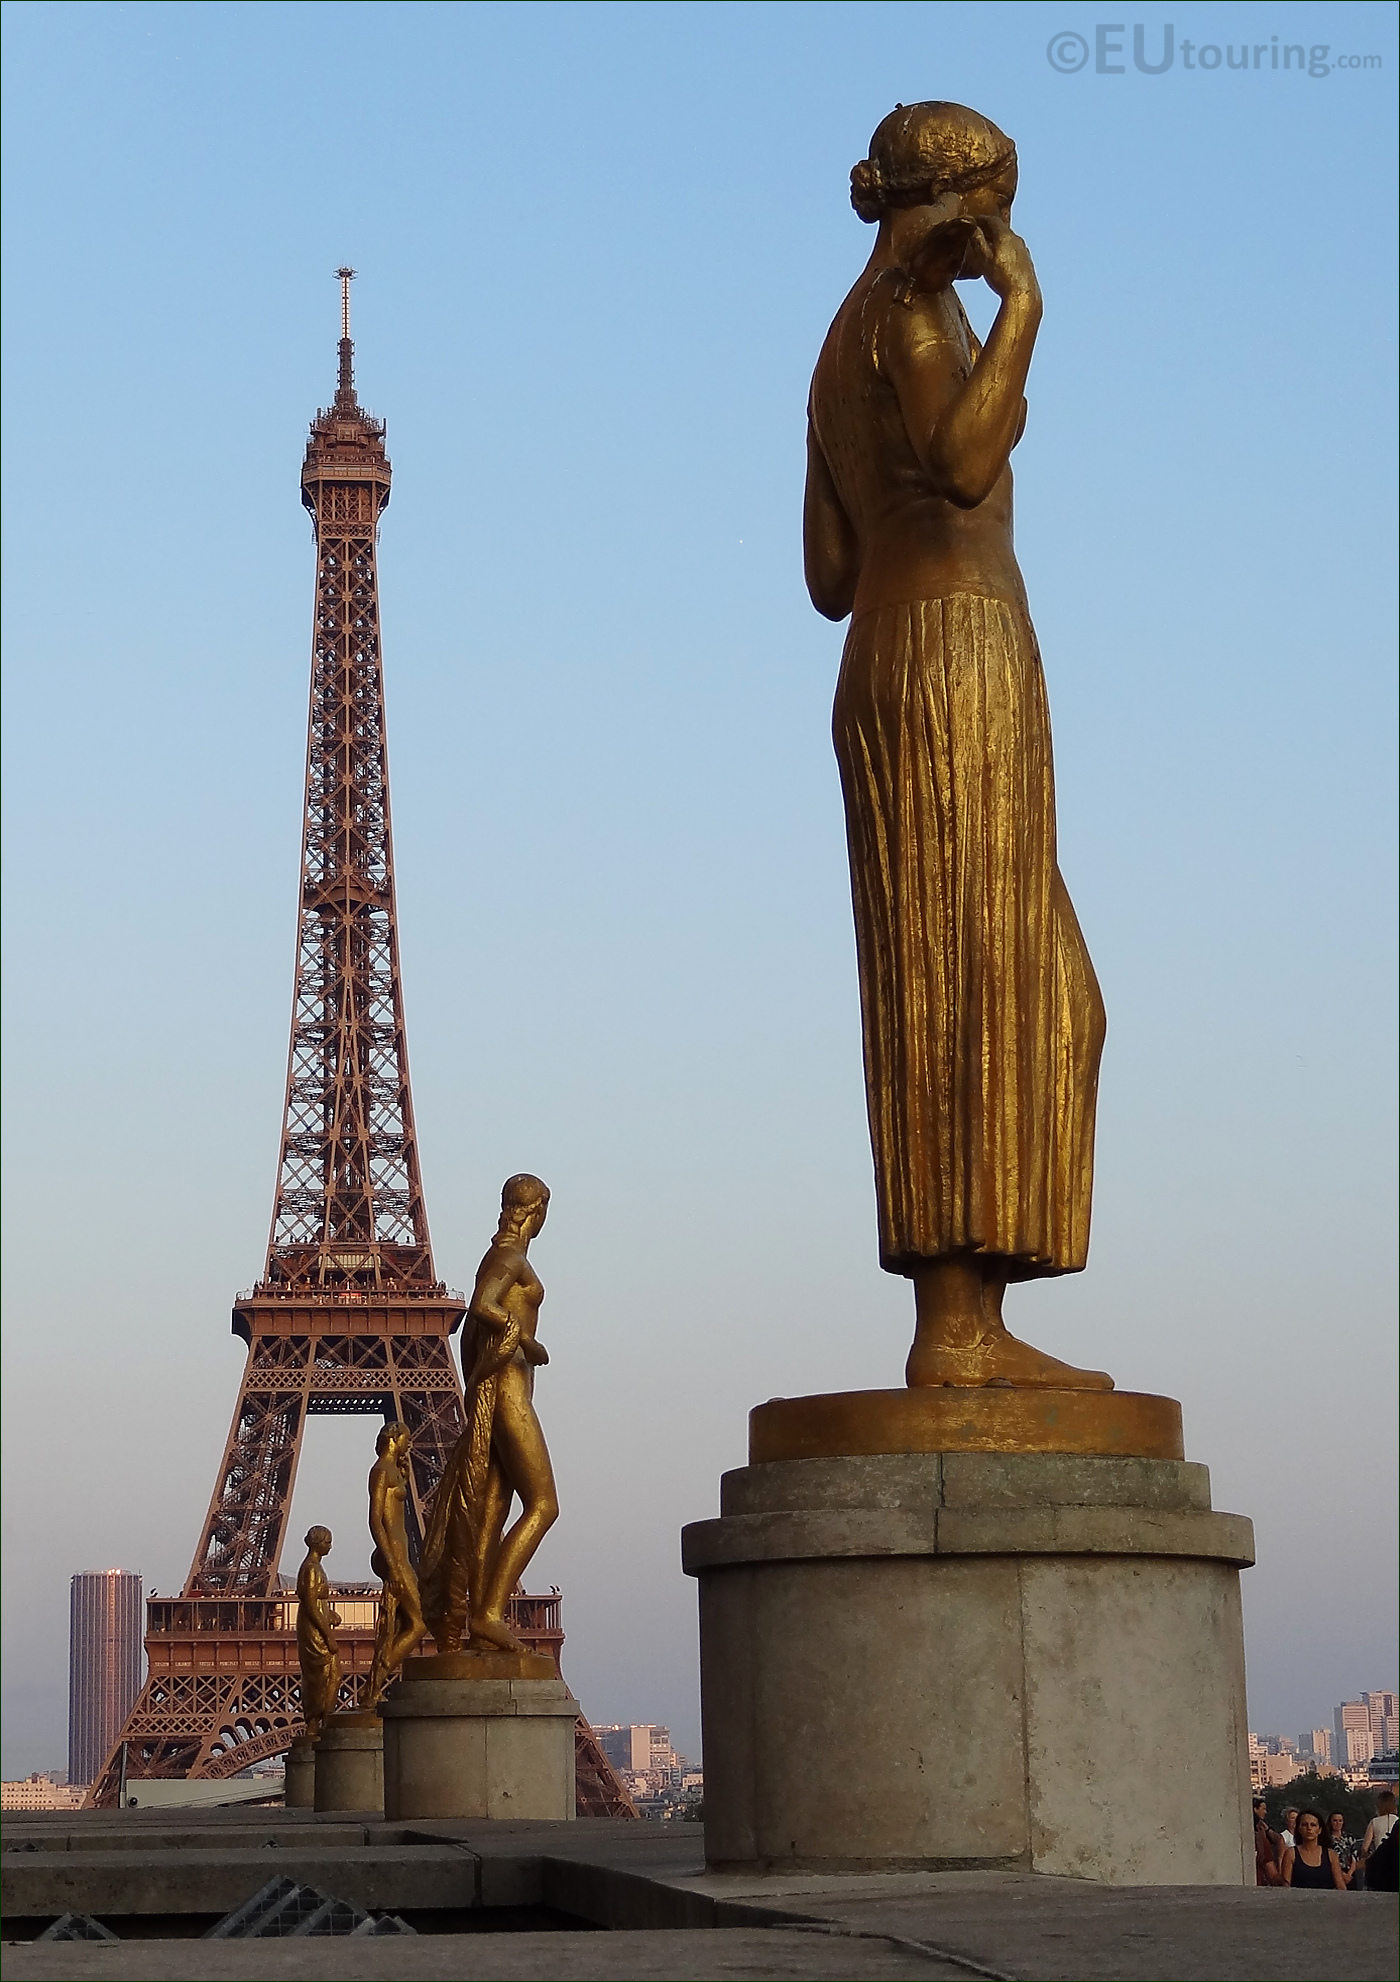 Hd Photos Of Paris Tourist Attractions In France